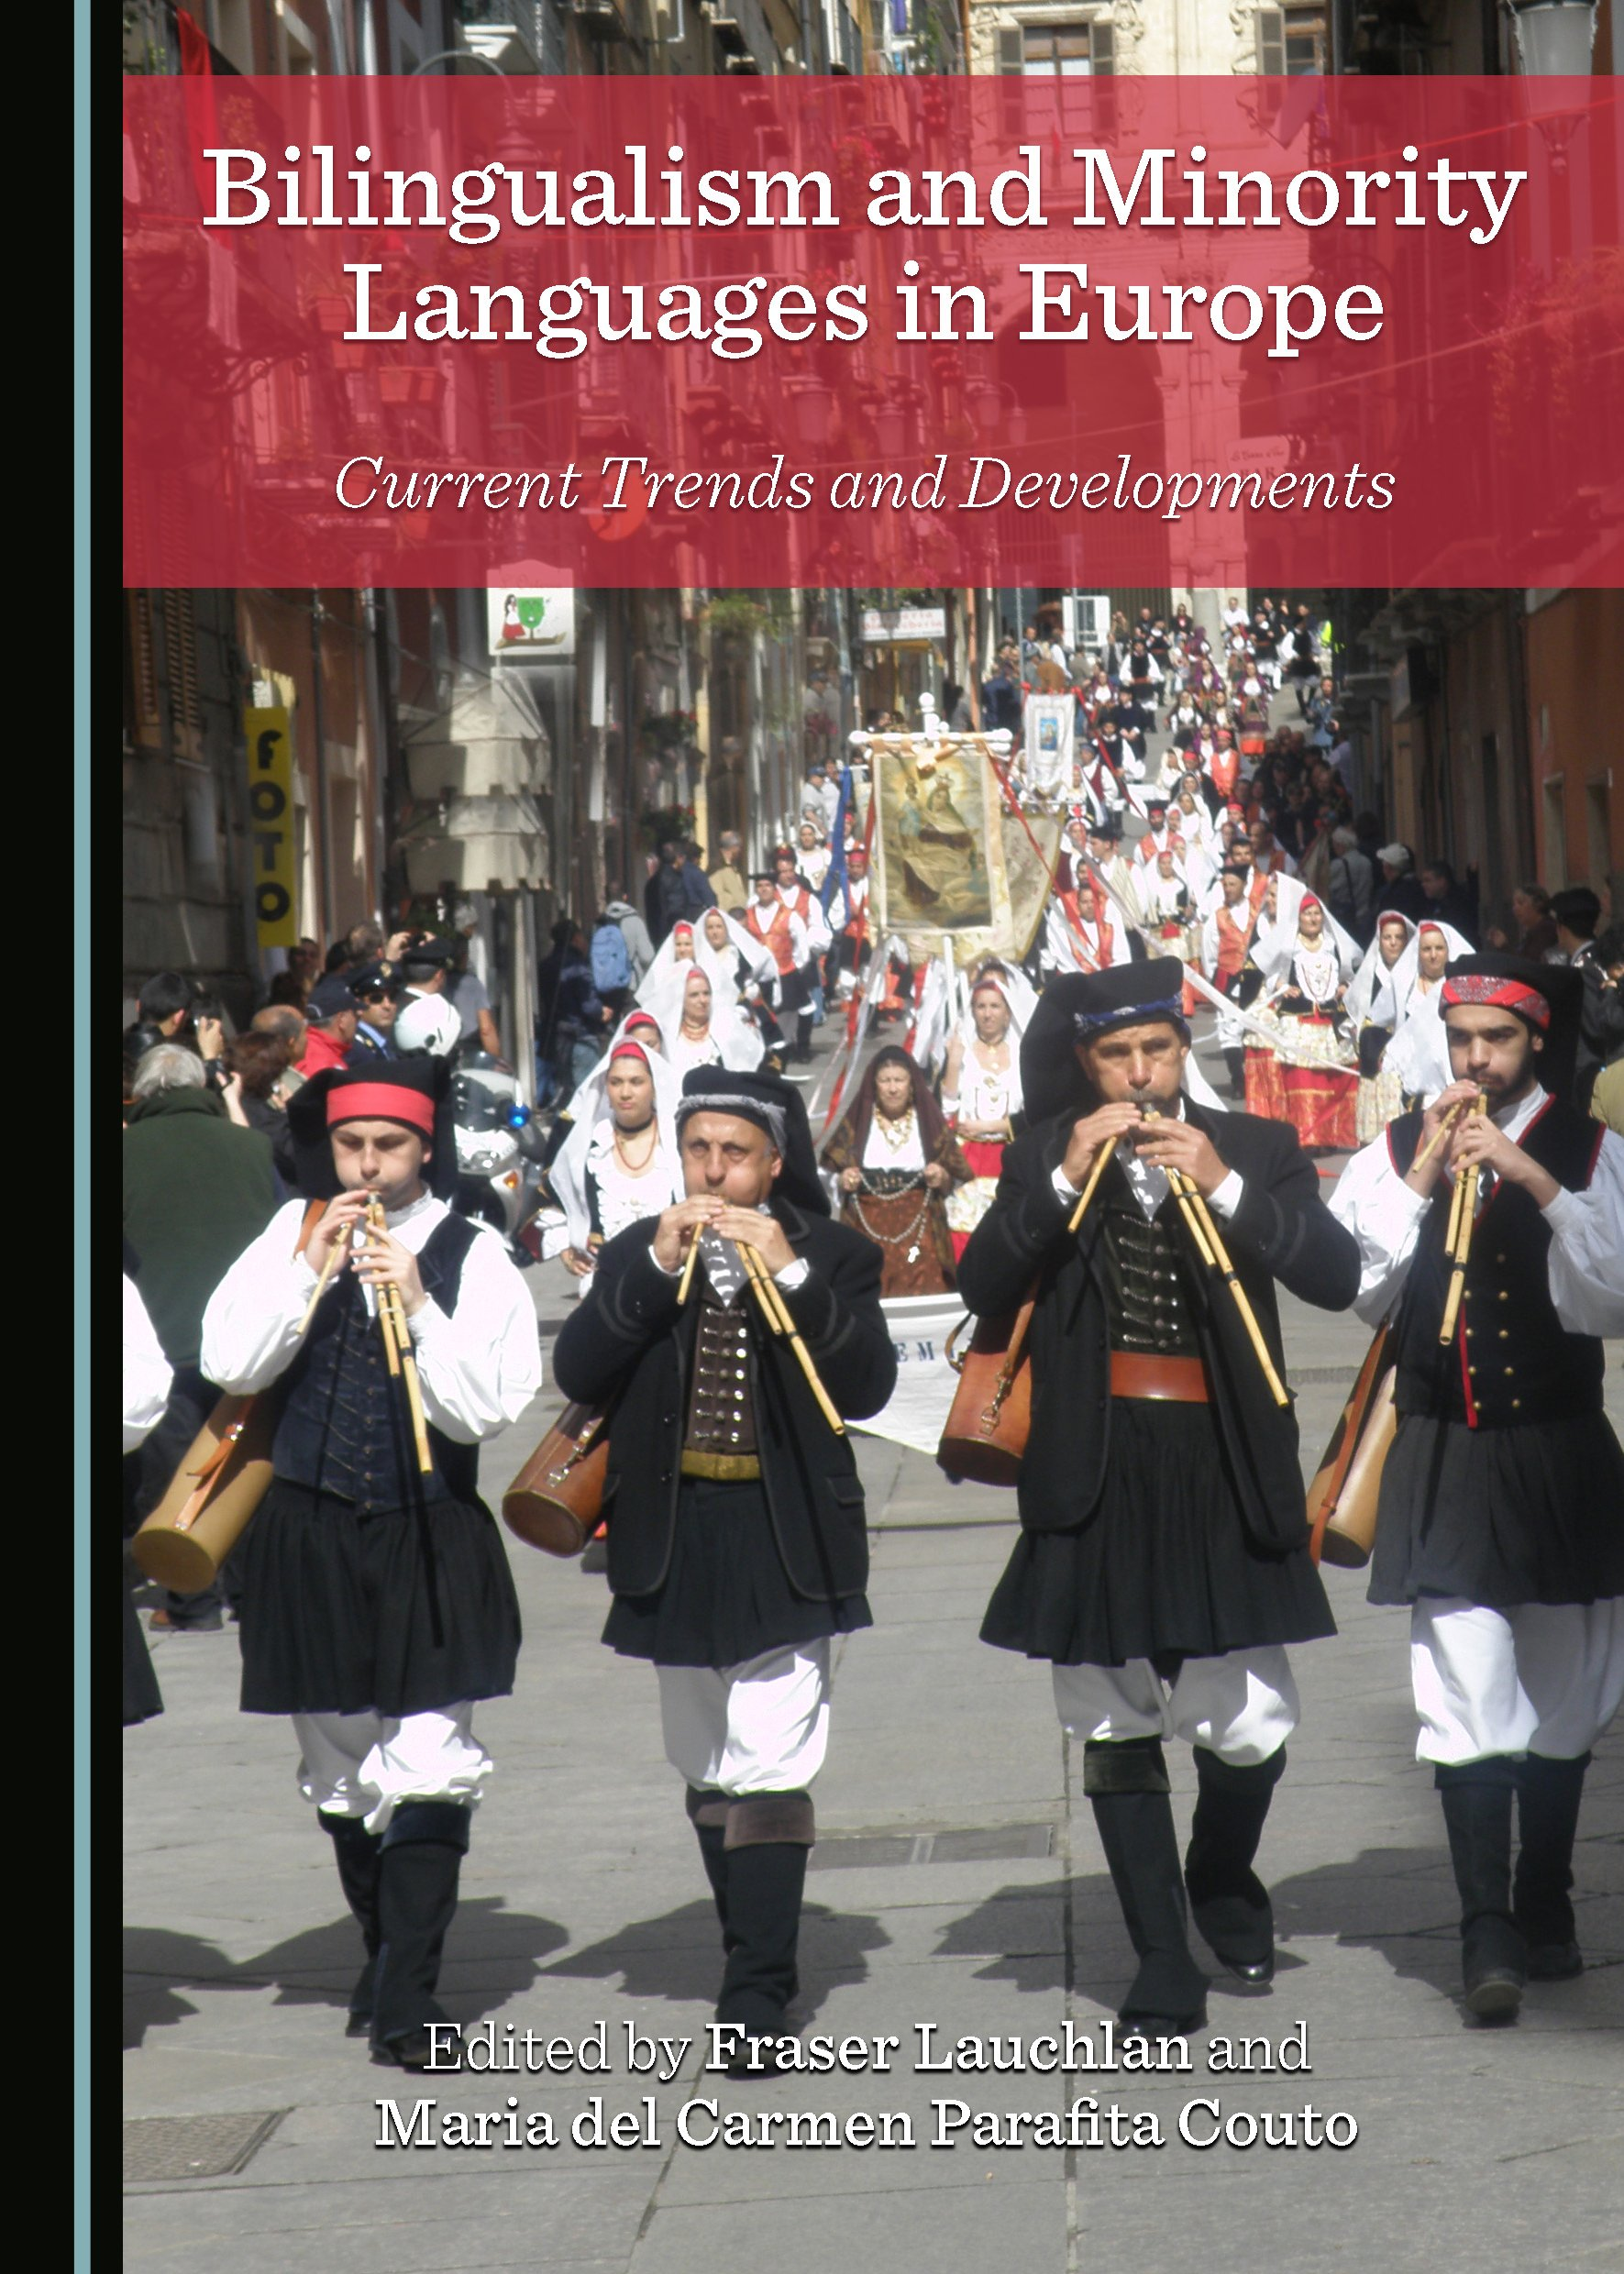 Bilingualism and Minority Languages in Europe: Current Trends and Developments